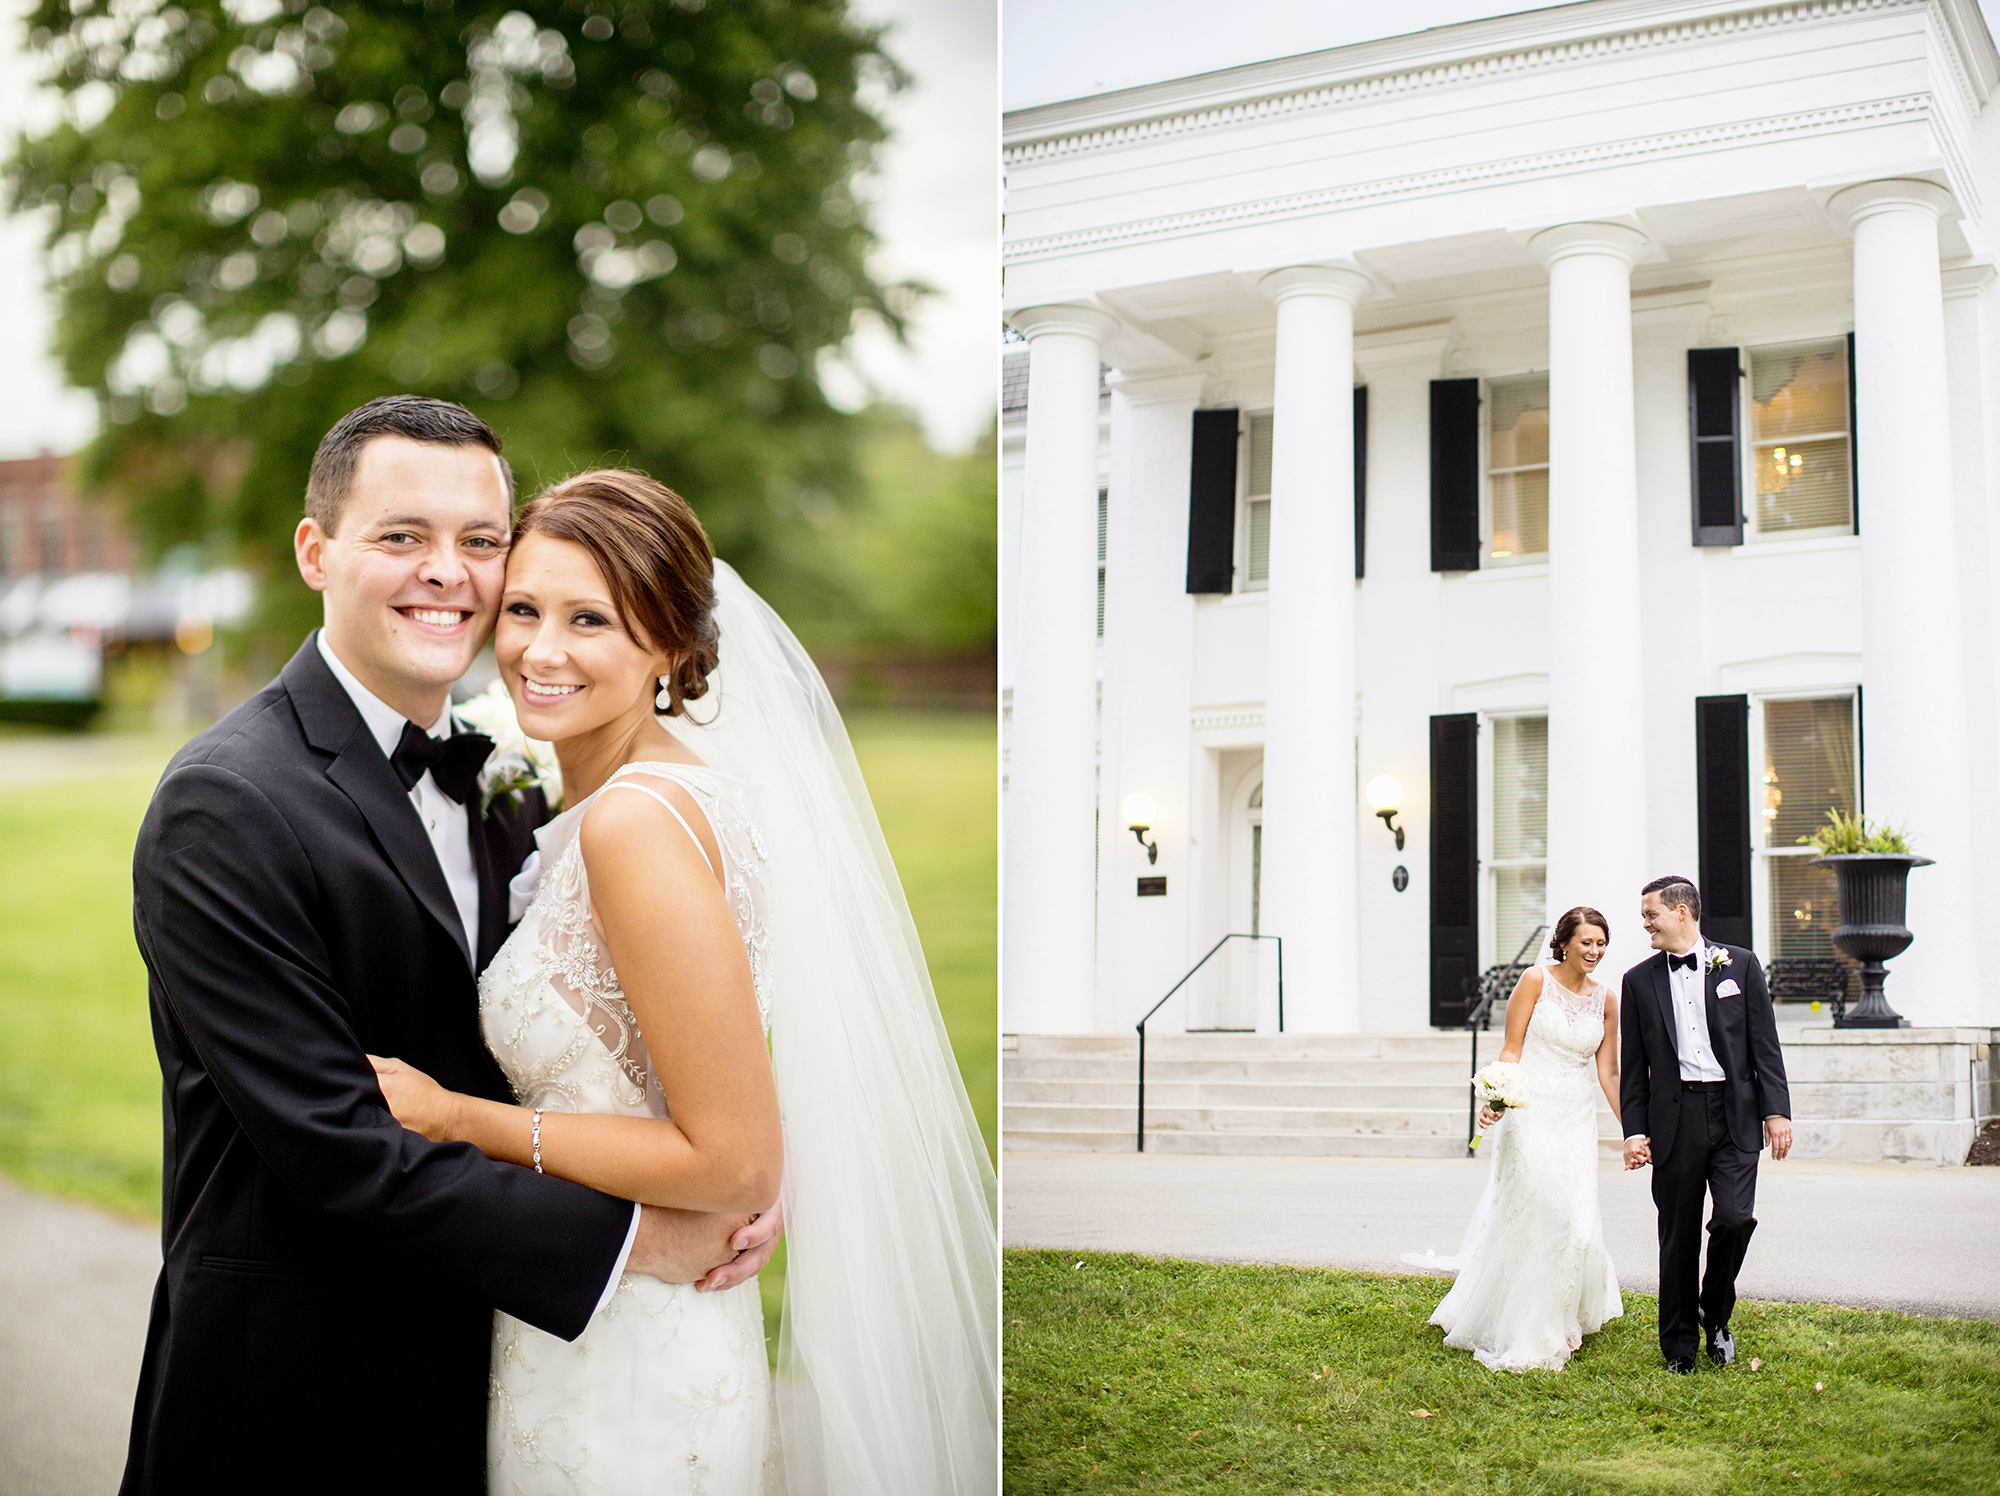 Seriously_Sabrina_Photography_Carrick_House_Lexington_Kentucky_Wedding_Solomon430.jpg